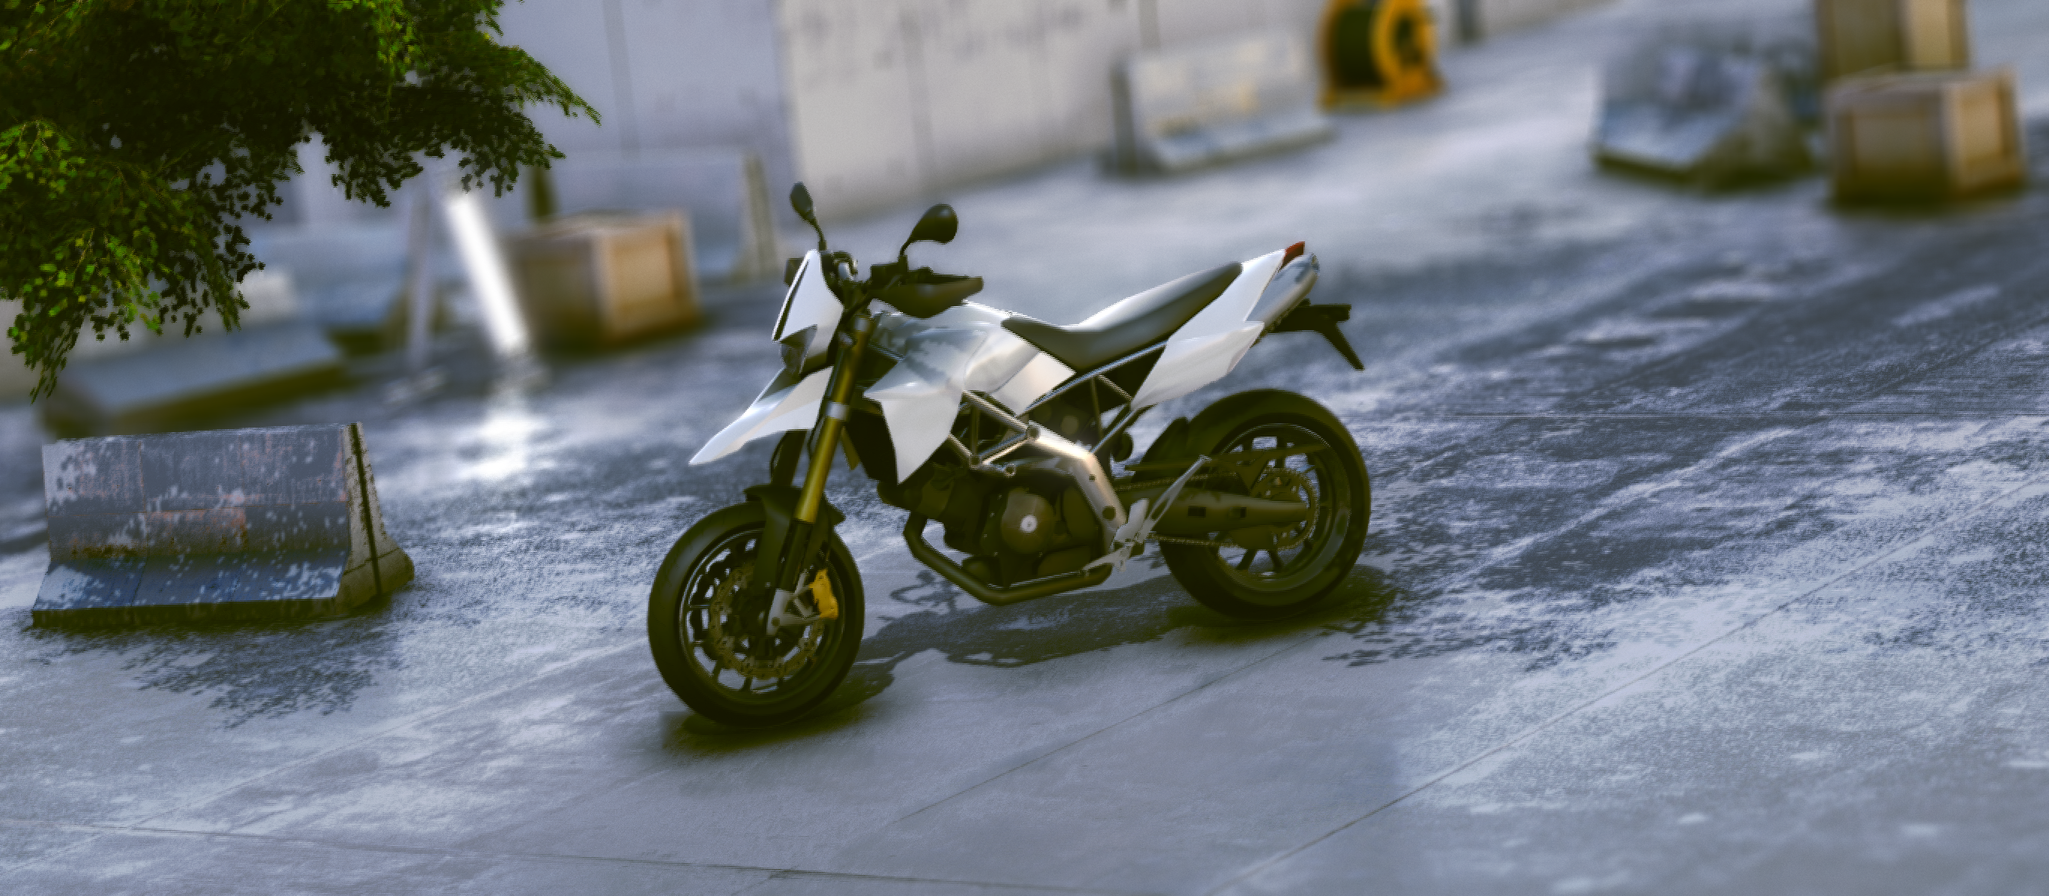 21 Exclusive HD Motorbike Mobile Ready